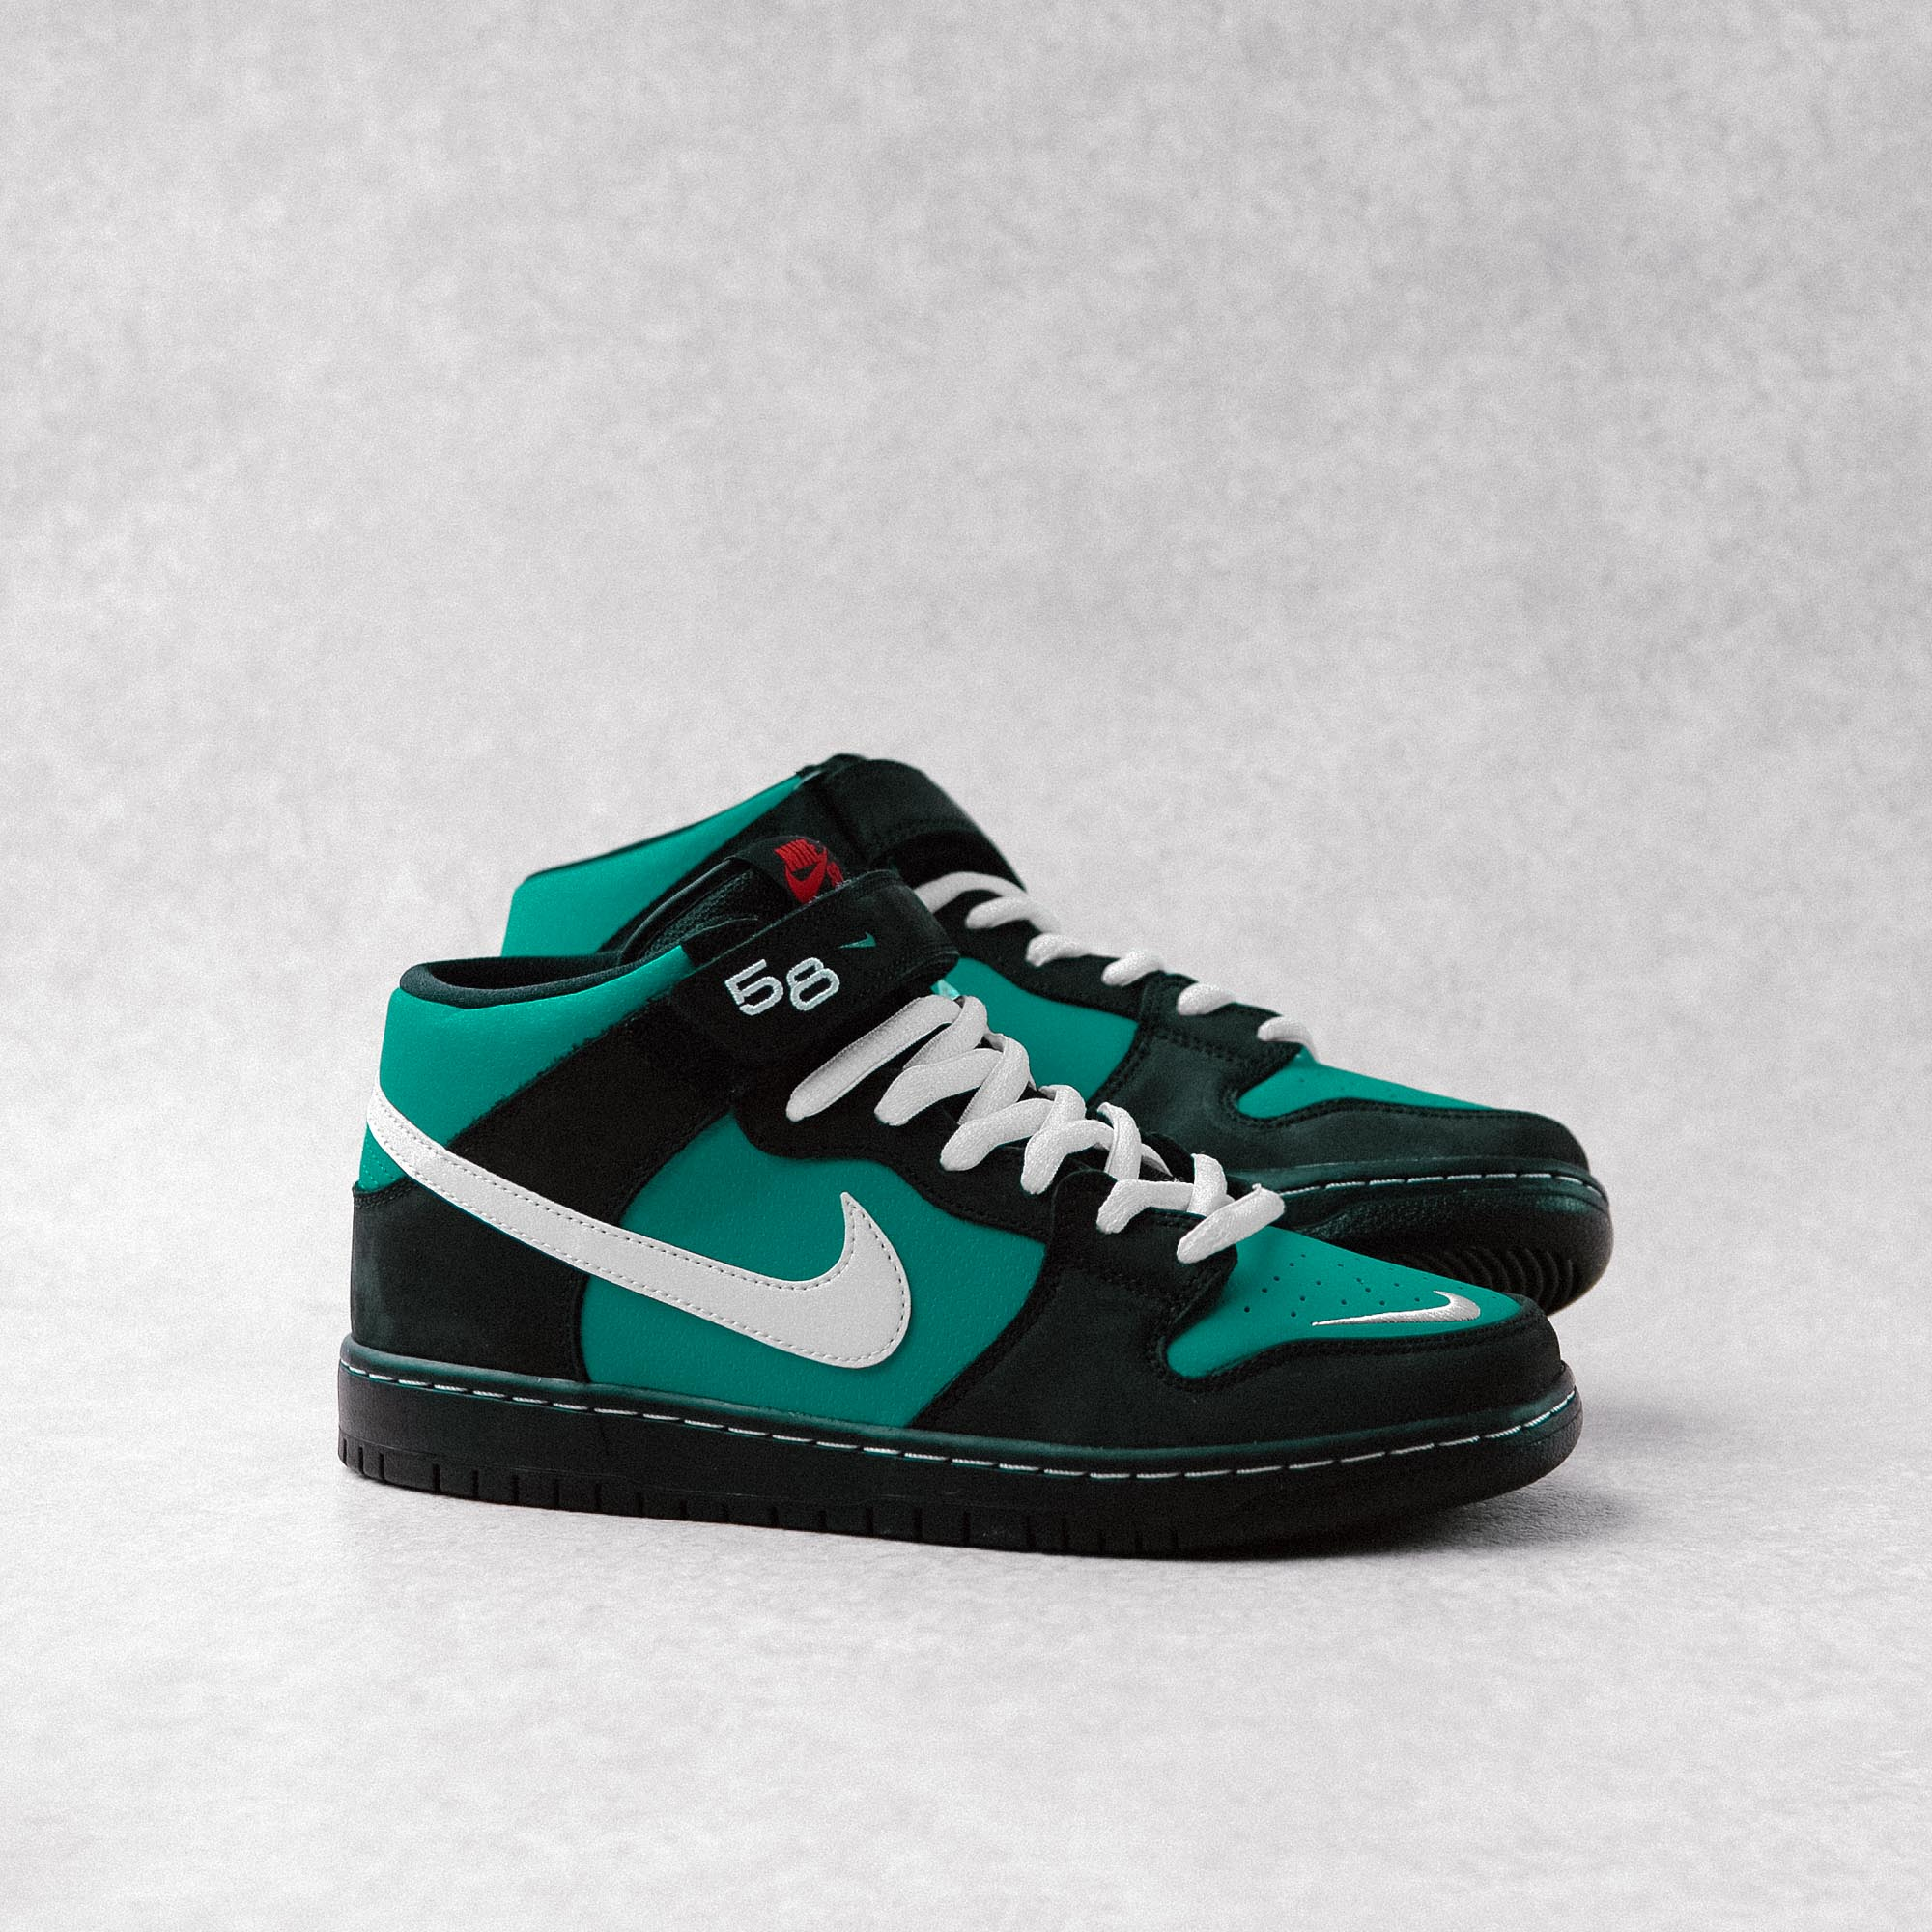 Nike SB Orange Label Dunk Mid Pro 'Griffey Jr' | Flatspot